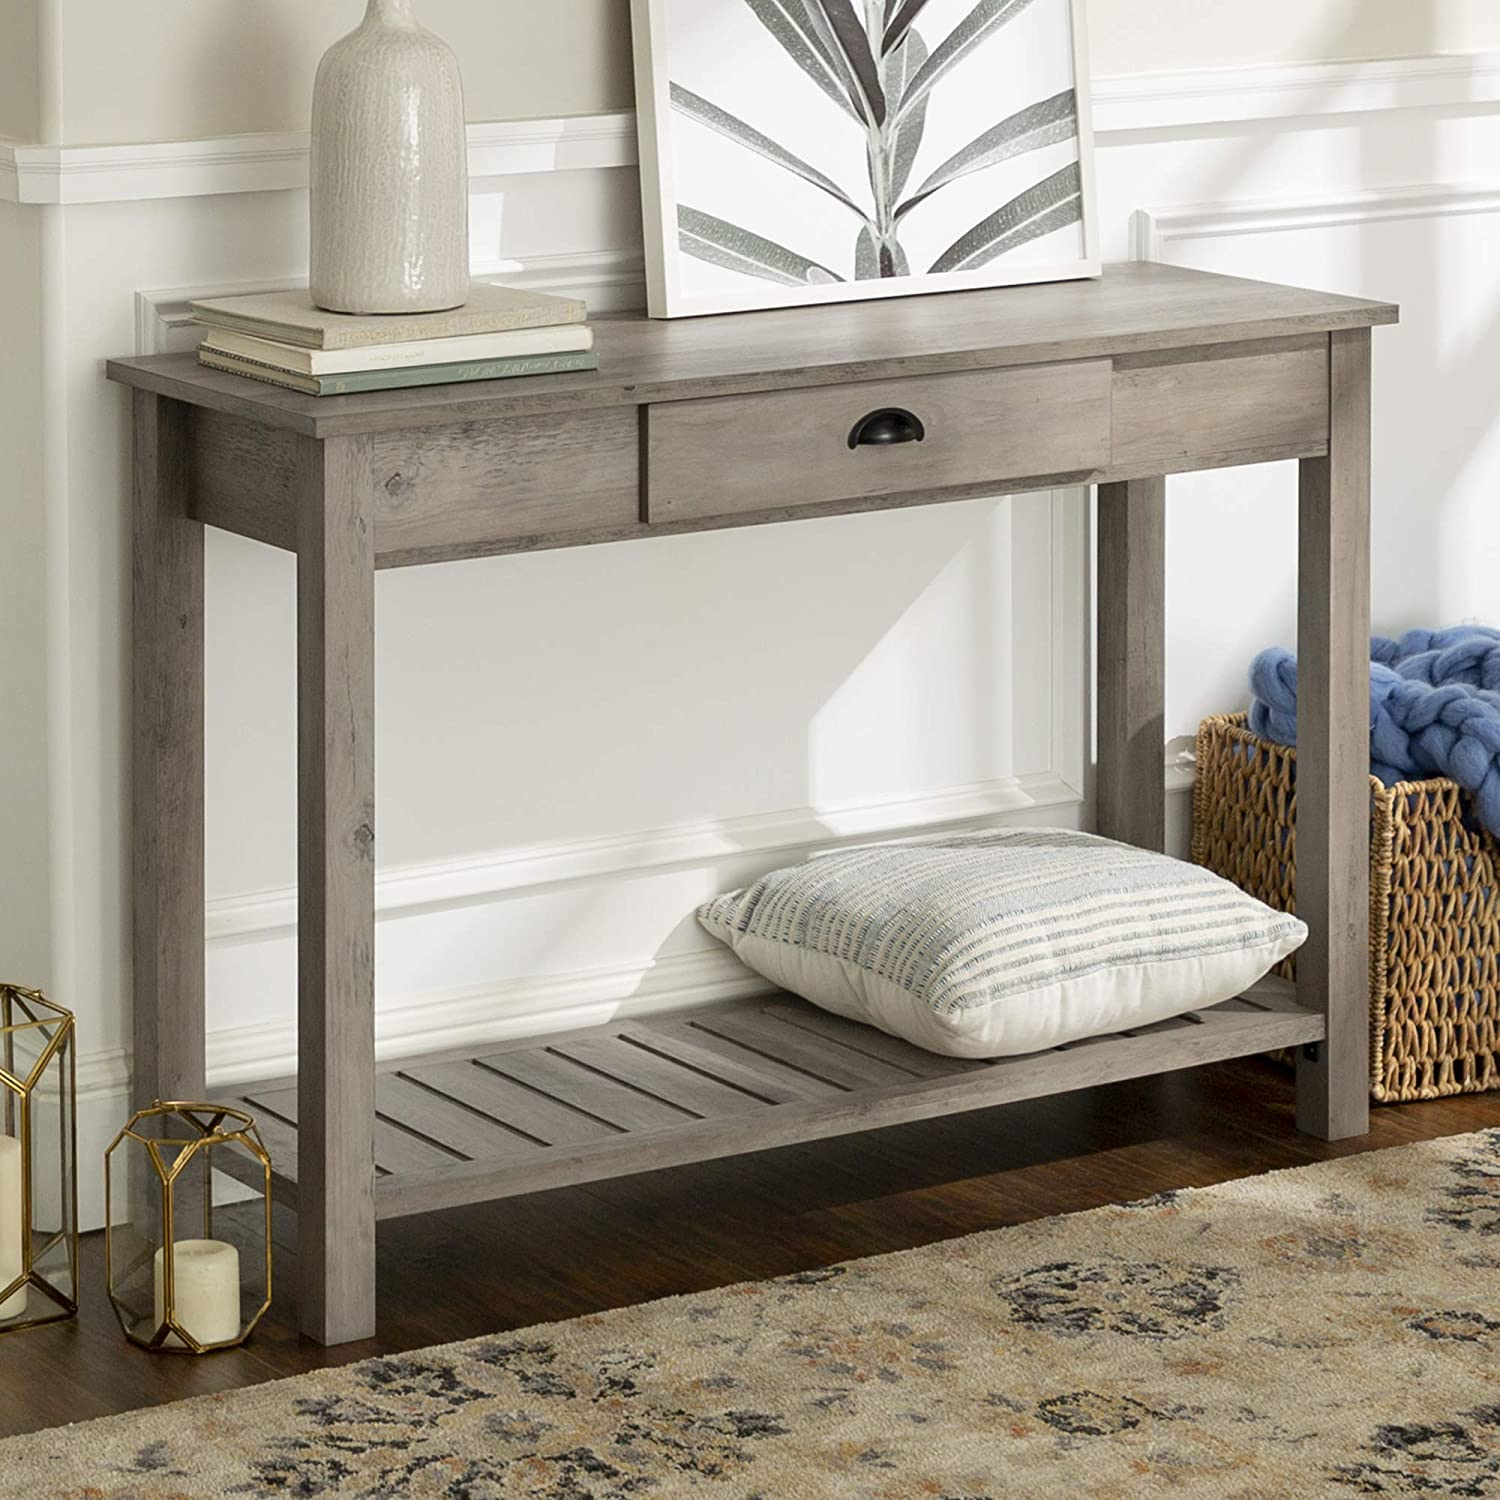 Amazon com we furniture azf48cyetgw country style entry console table 48 gray wash kitchen dining